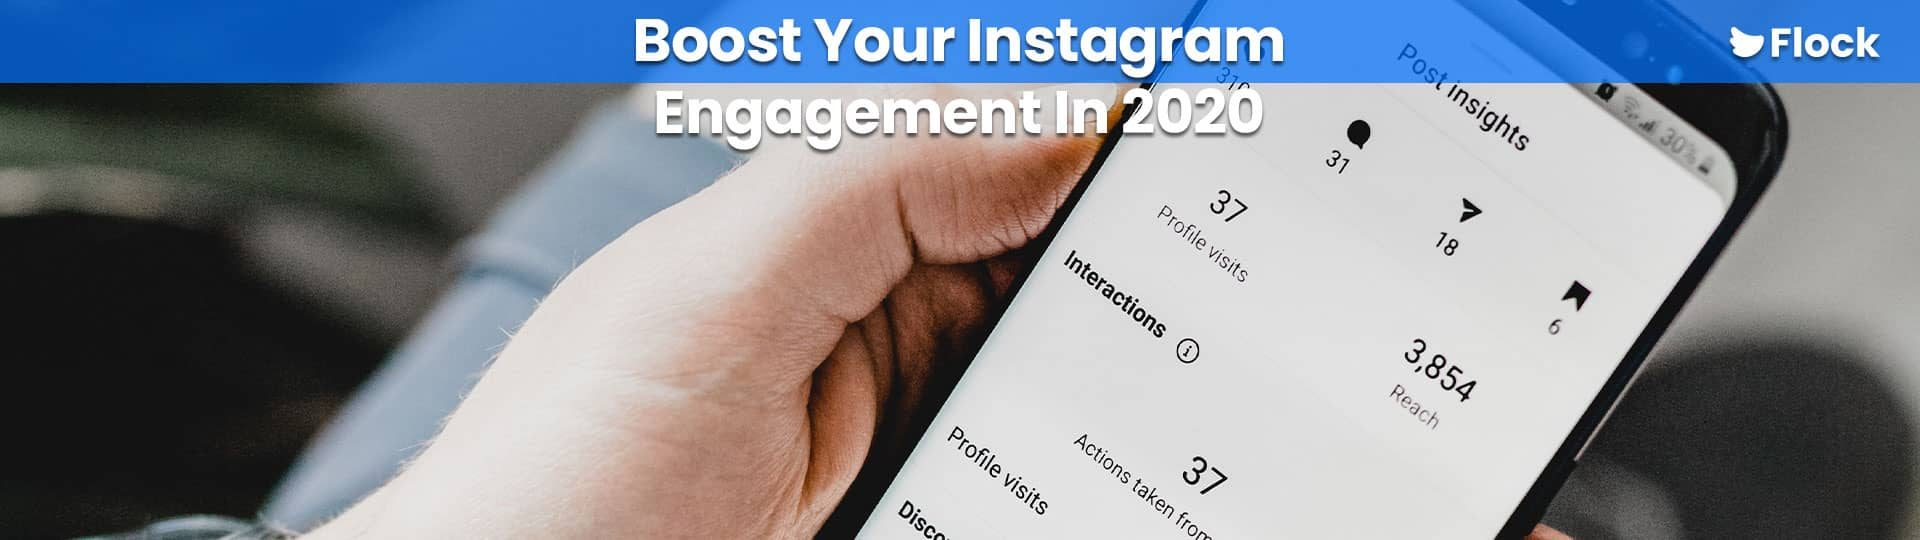 Boost-Your-Instagram-Engagement-In-2020